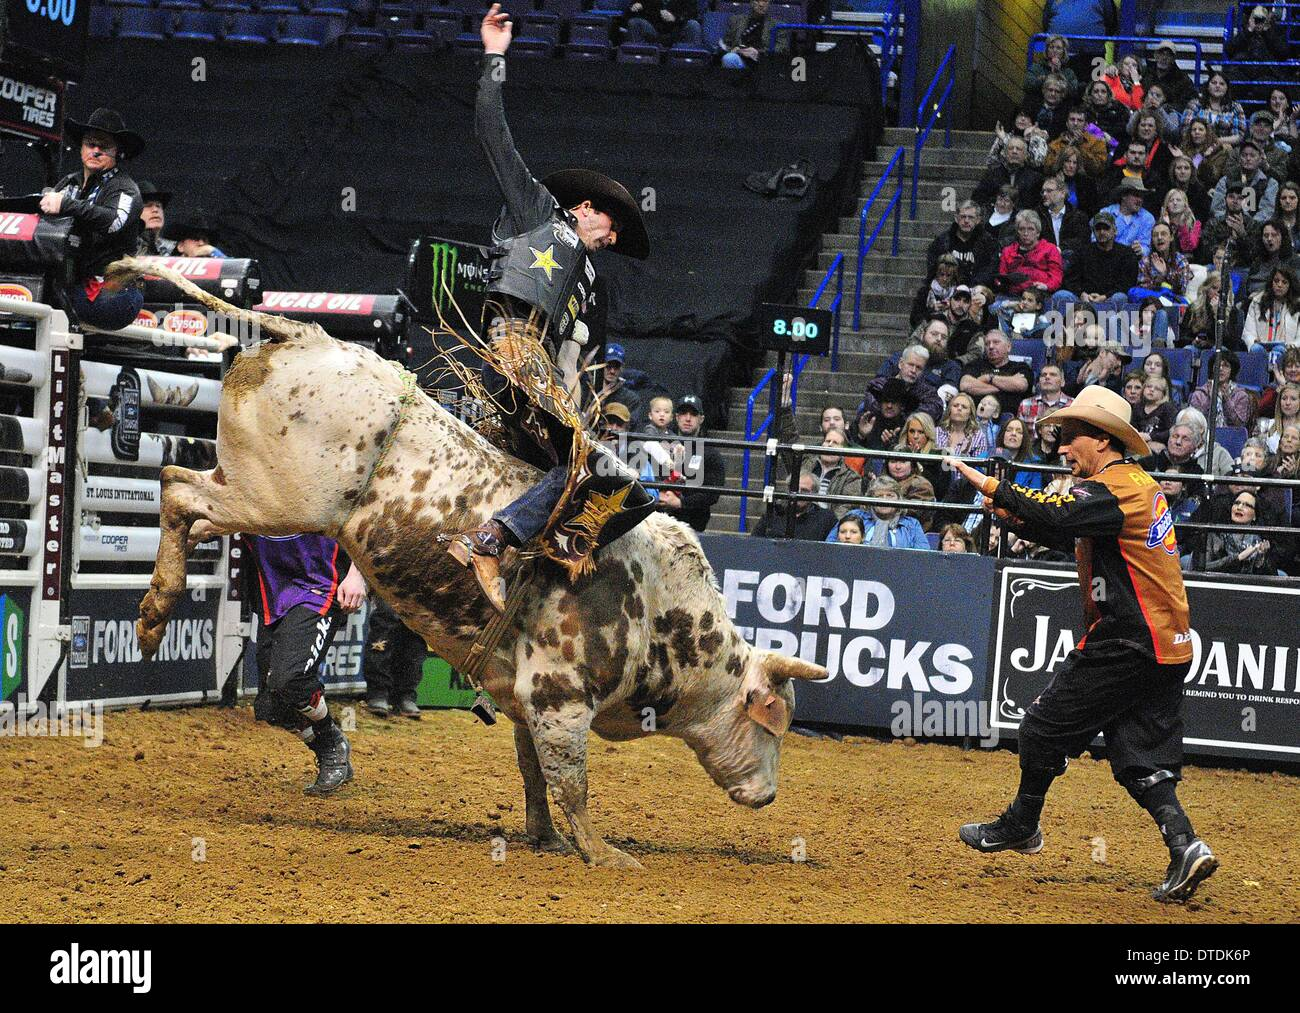 St. Louis, Missouri, USA. 15th Feb, 2014. February 14, 2014: Rider Fabiano Vieira on bull Pistol Pete during the Stock Photo